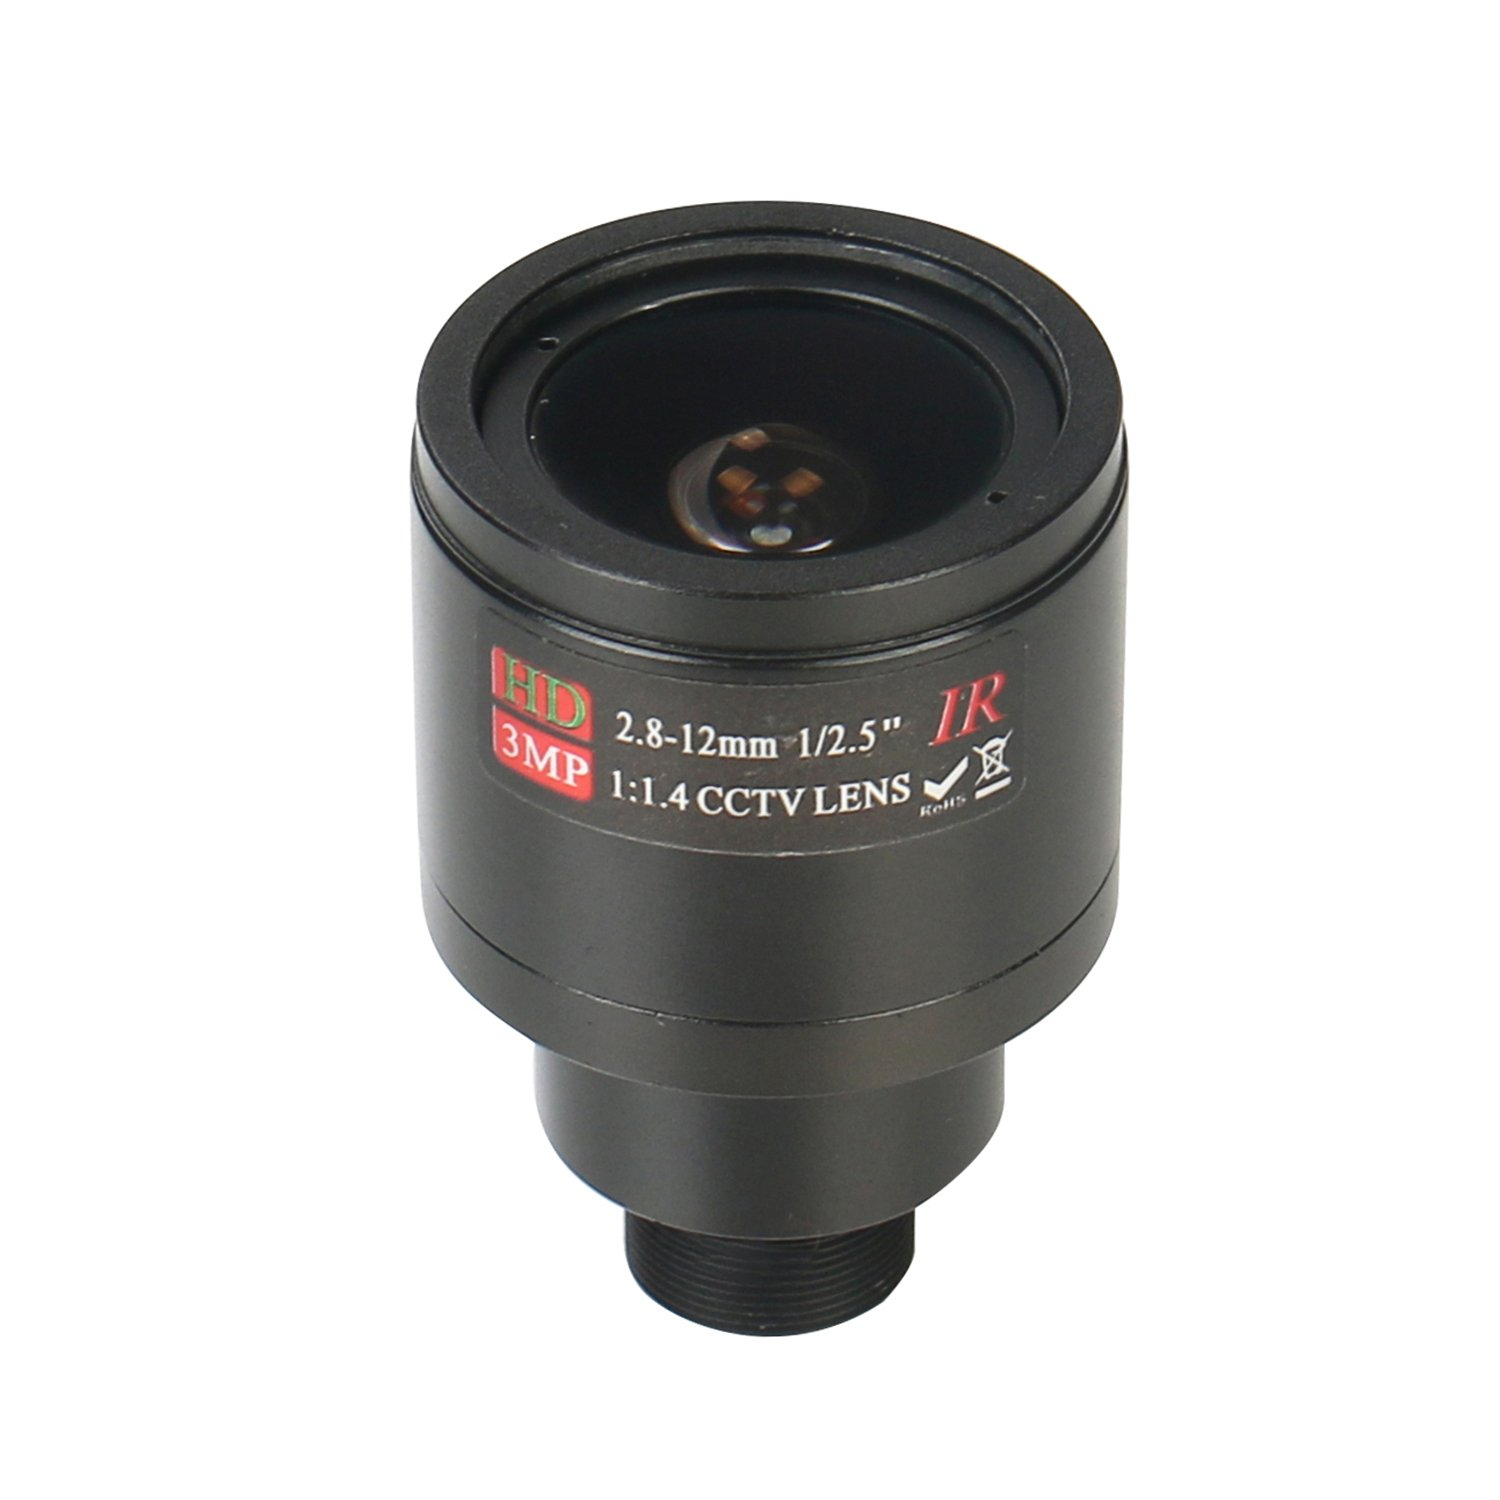 HonYan 2.8-12mm CCTV Lens M12 Mount 3.0MP 1/2.5'' F1.4 CCTV Video Vari-focal Zoom Lens for CCTV Security Camera by HonYan